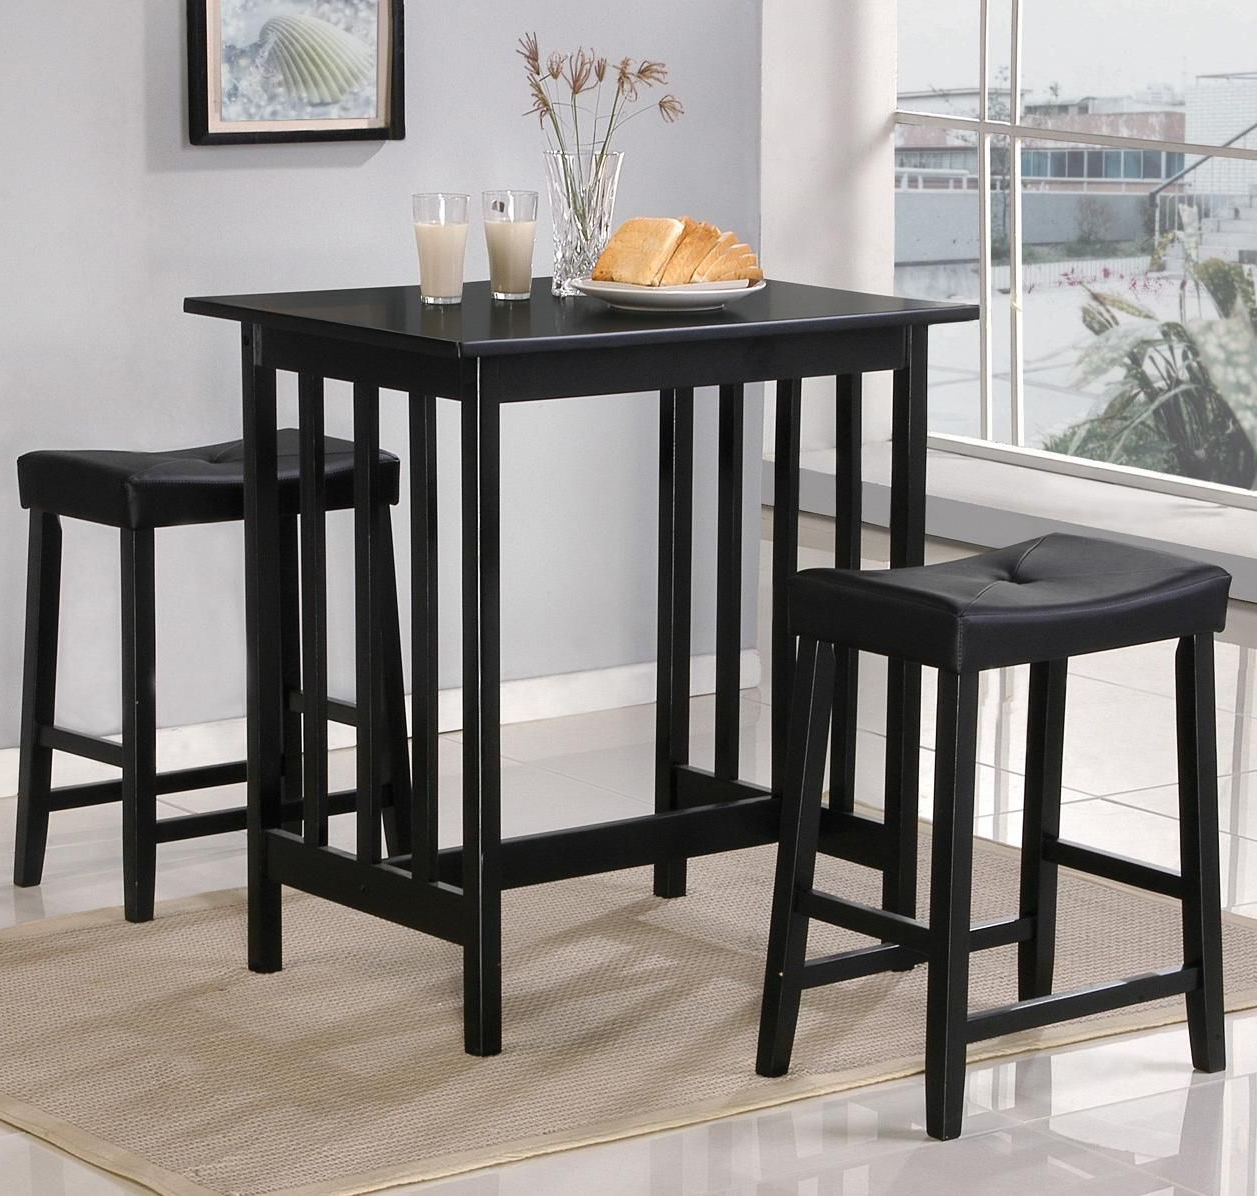 Newest 9399 3 Piece Counter Table And Stool Setworld Imports – Wolf With Regard To Bettencourt 3 Piece Counter Height Dining Sets (View 13 of 20)